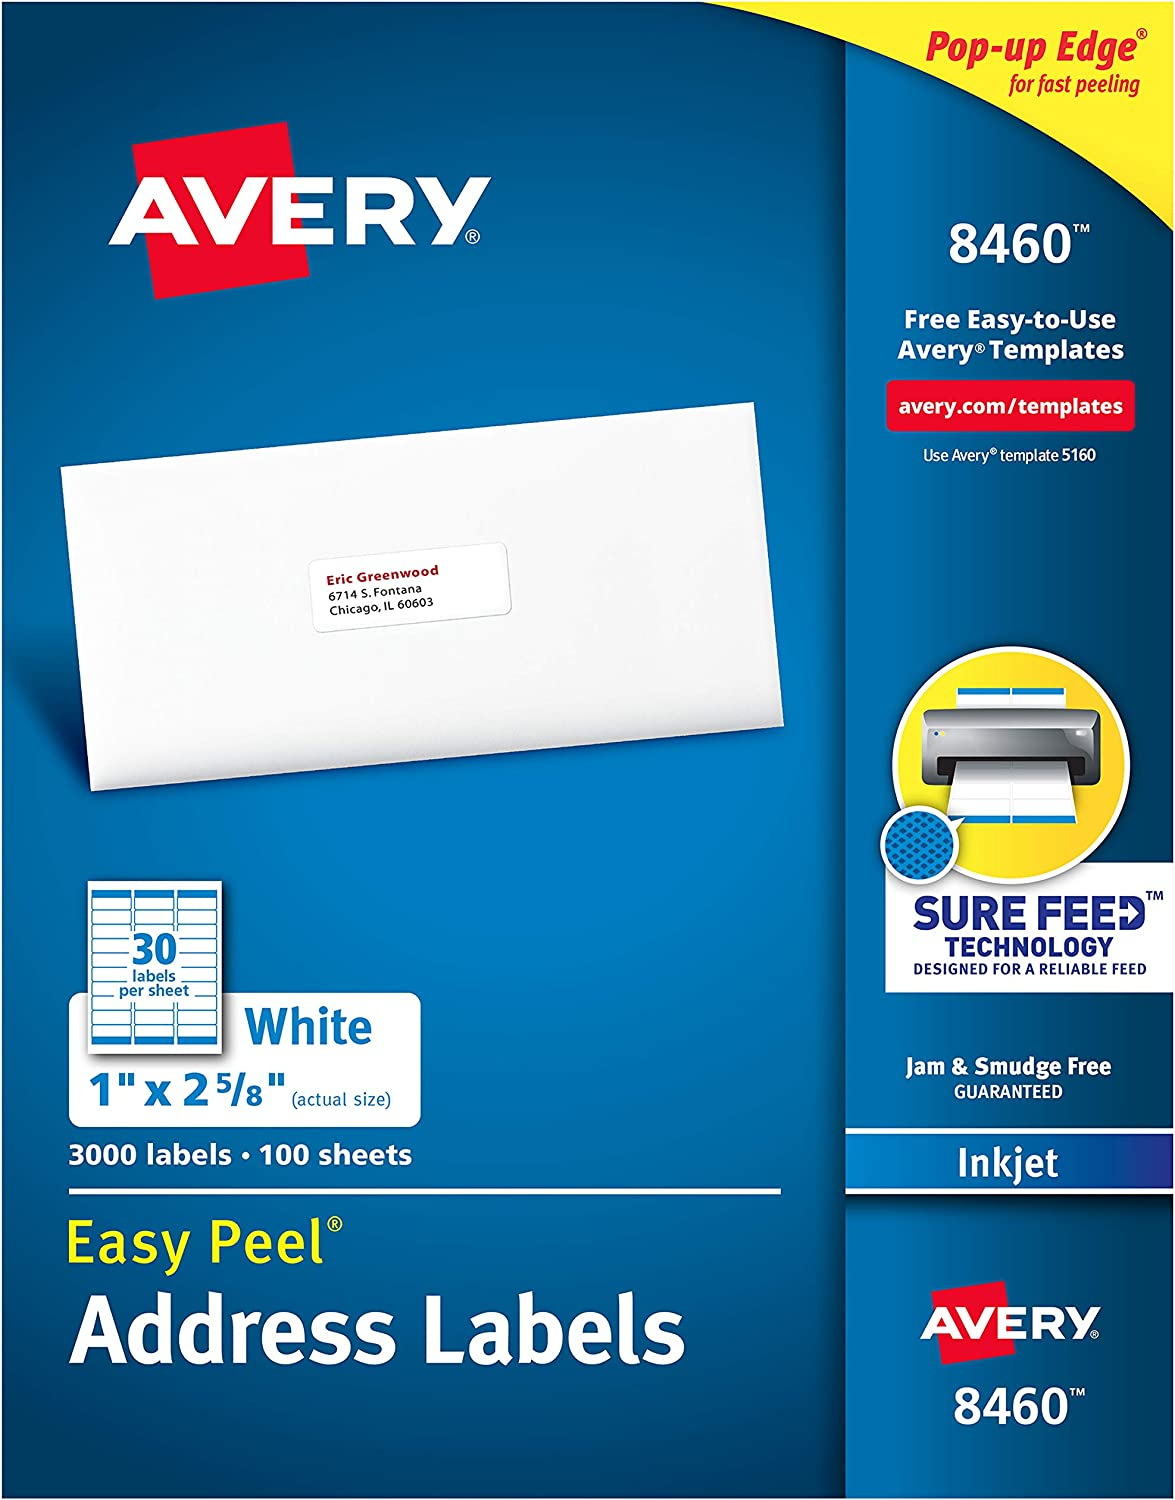 "Avery Address Labels with Sure Feed for Inkjet Printers, 1"" x 2-5/8"", 3, 000 Labels, Permanent Adhesive (8460), White : Address Labels : Office Products"